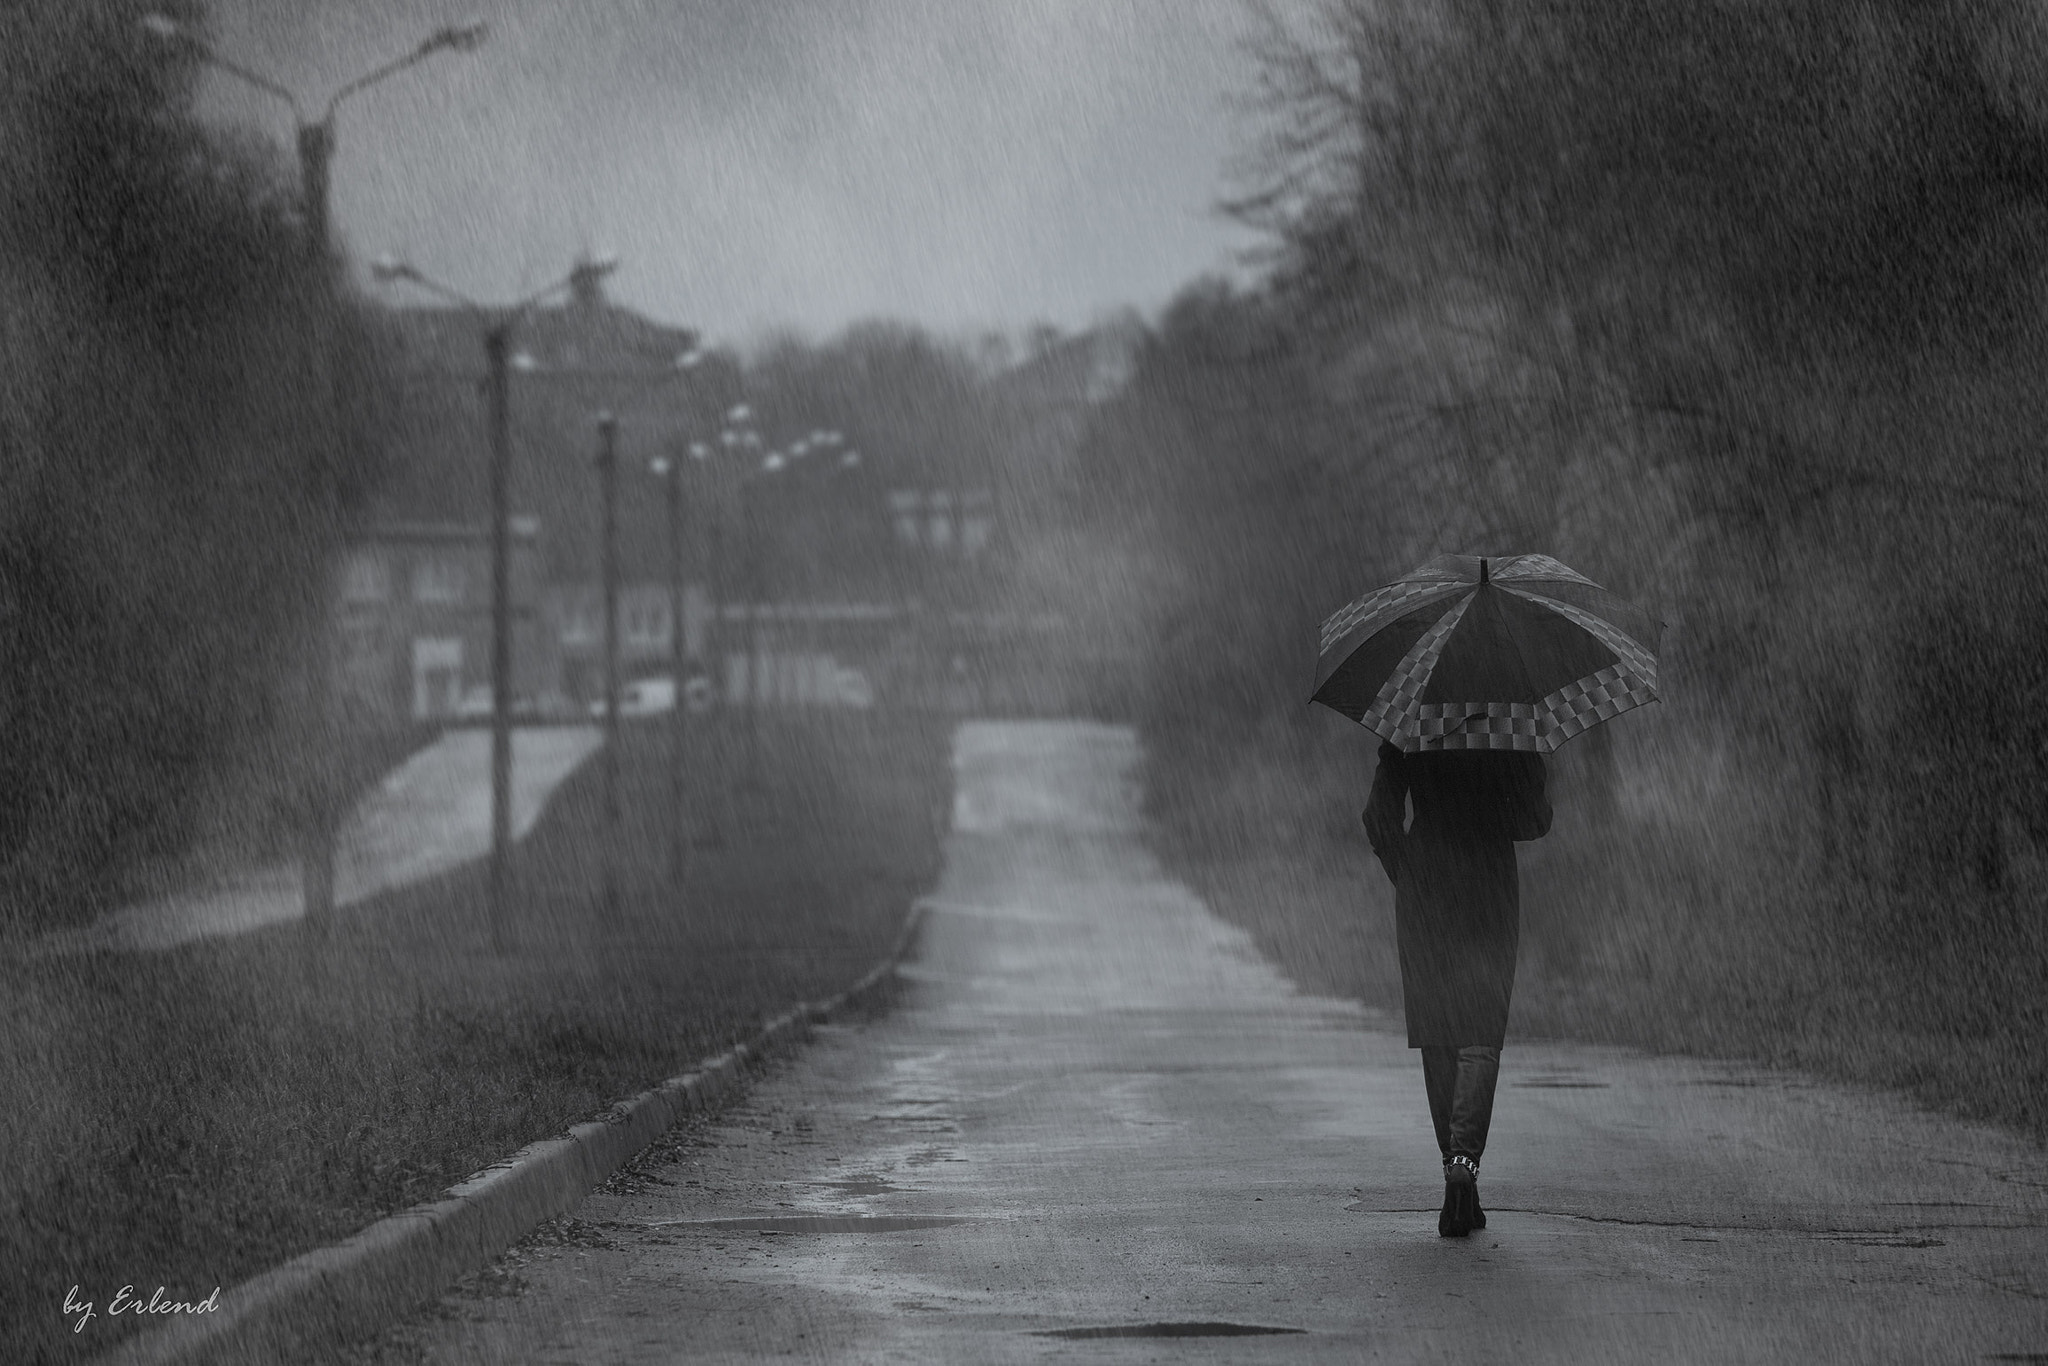 Photograph The rain by Erlend  on 500px